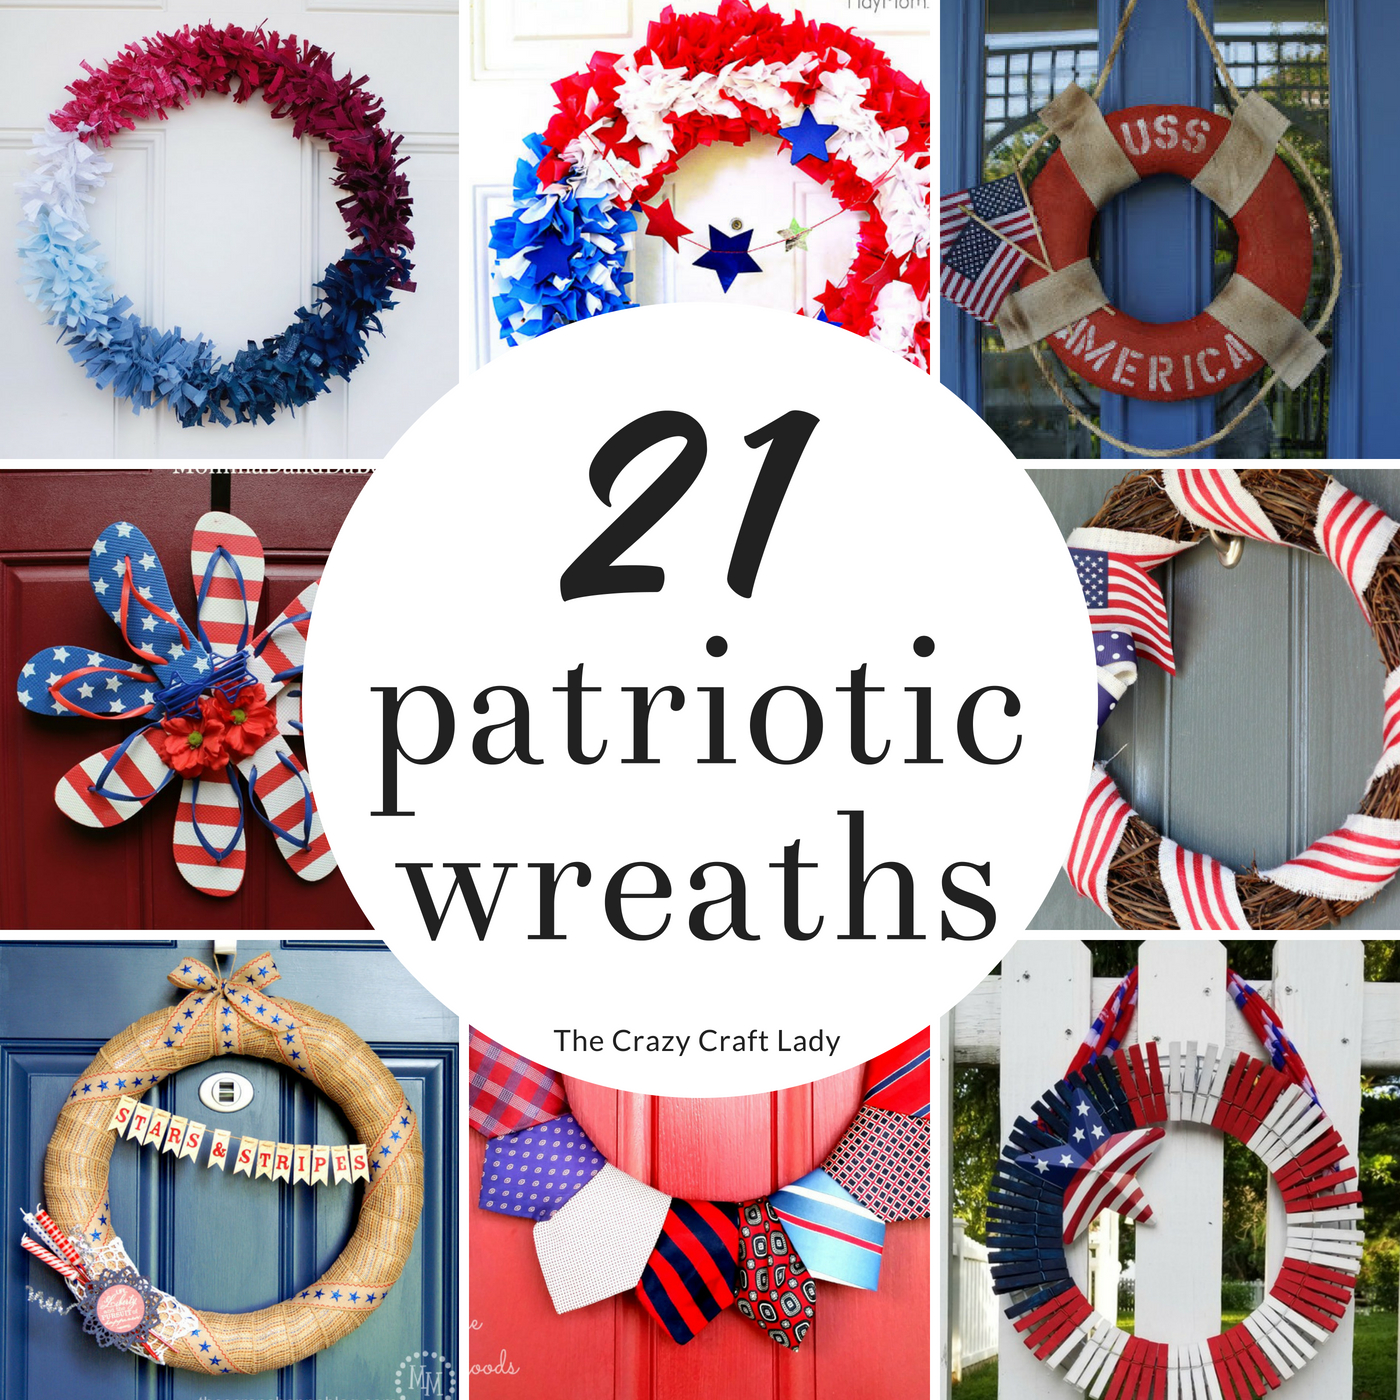 These 21 patriotic wreaths are perfect for summer crafting or making a quick DIY 4th of July decoration. Make a red, white, and blue wreath for your front door or for a patriotic home decoration.